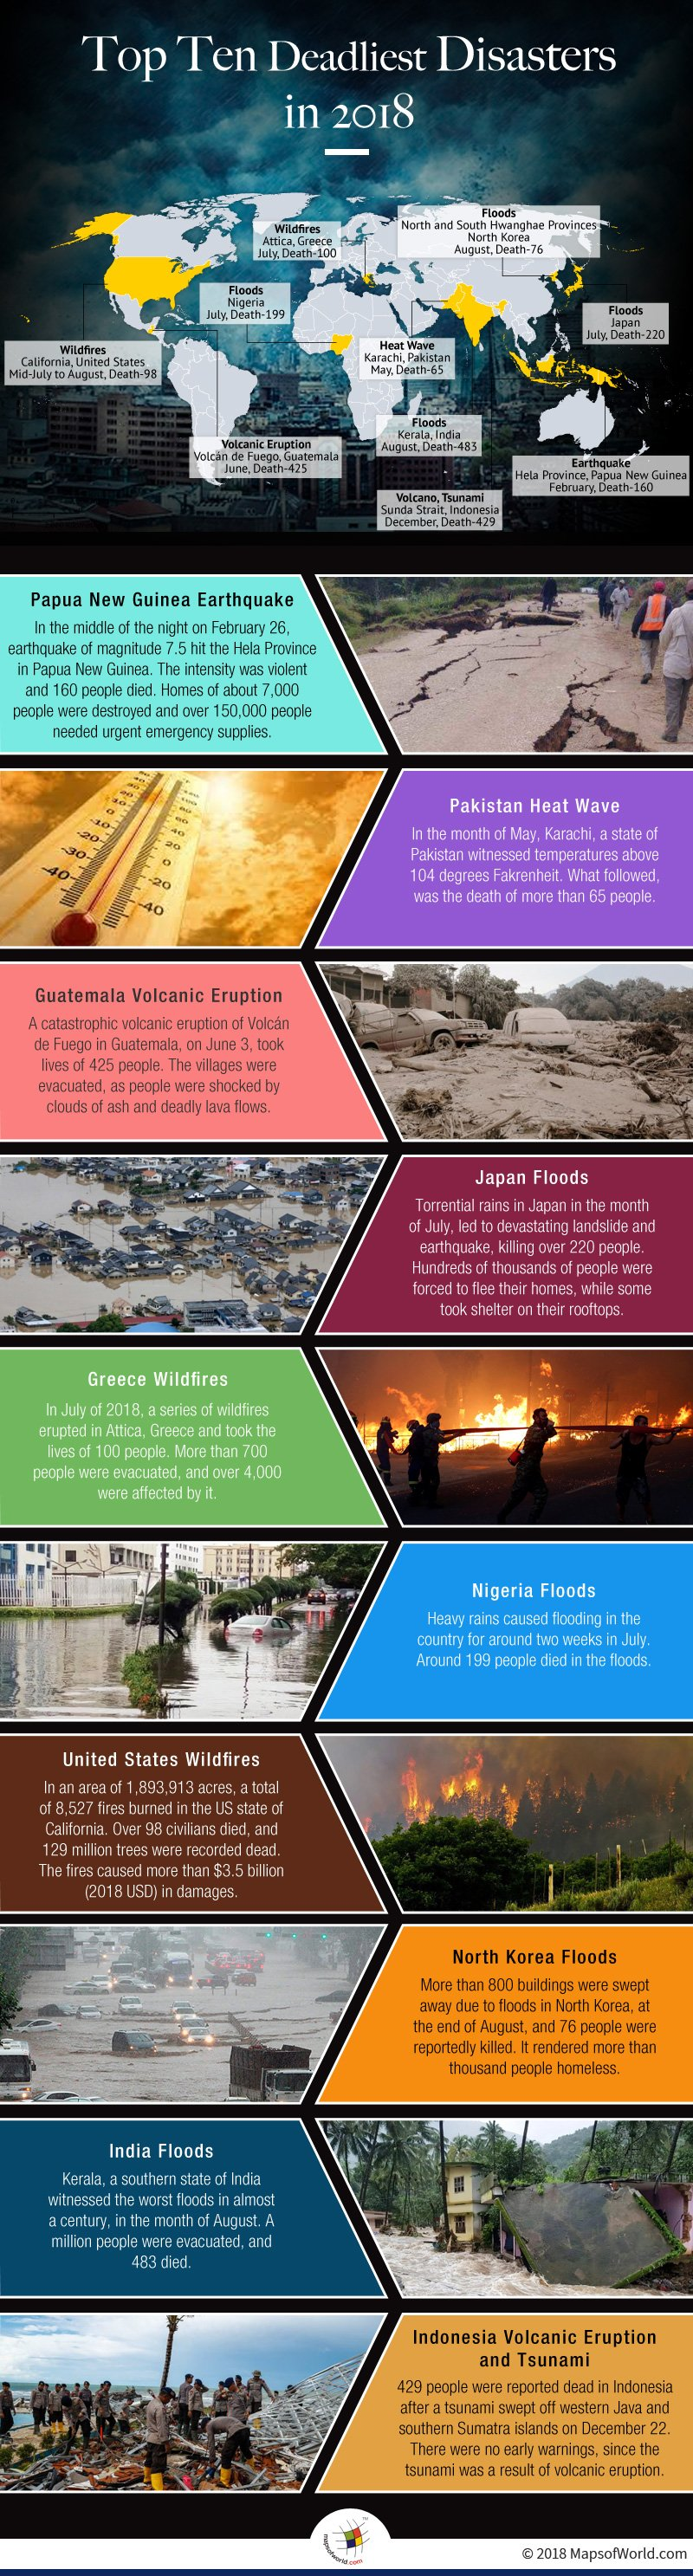 Infographic elaborating deadliest disasters of 2018